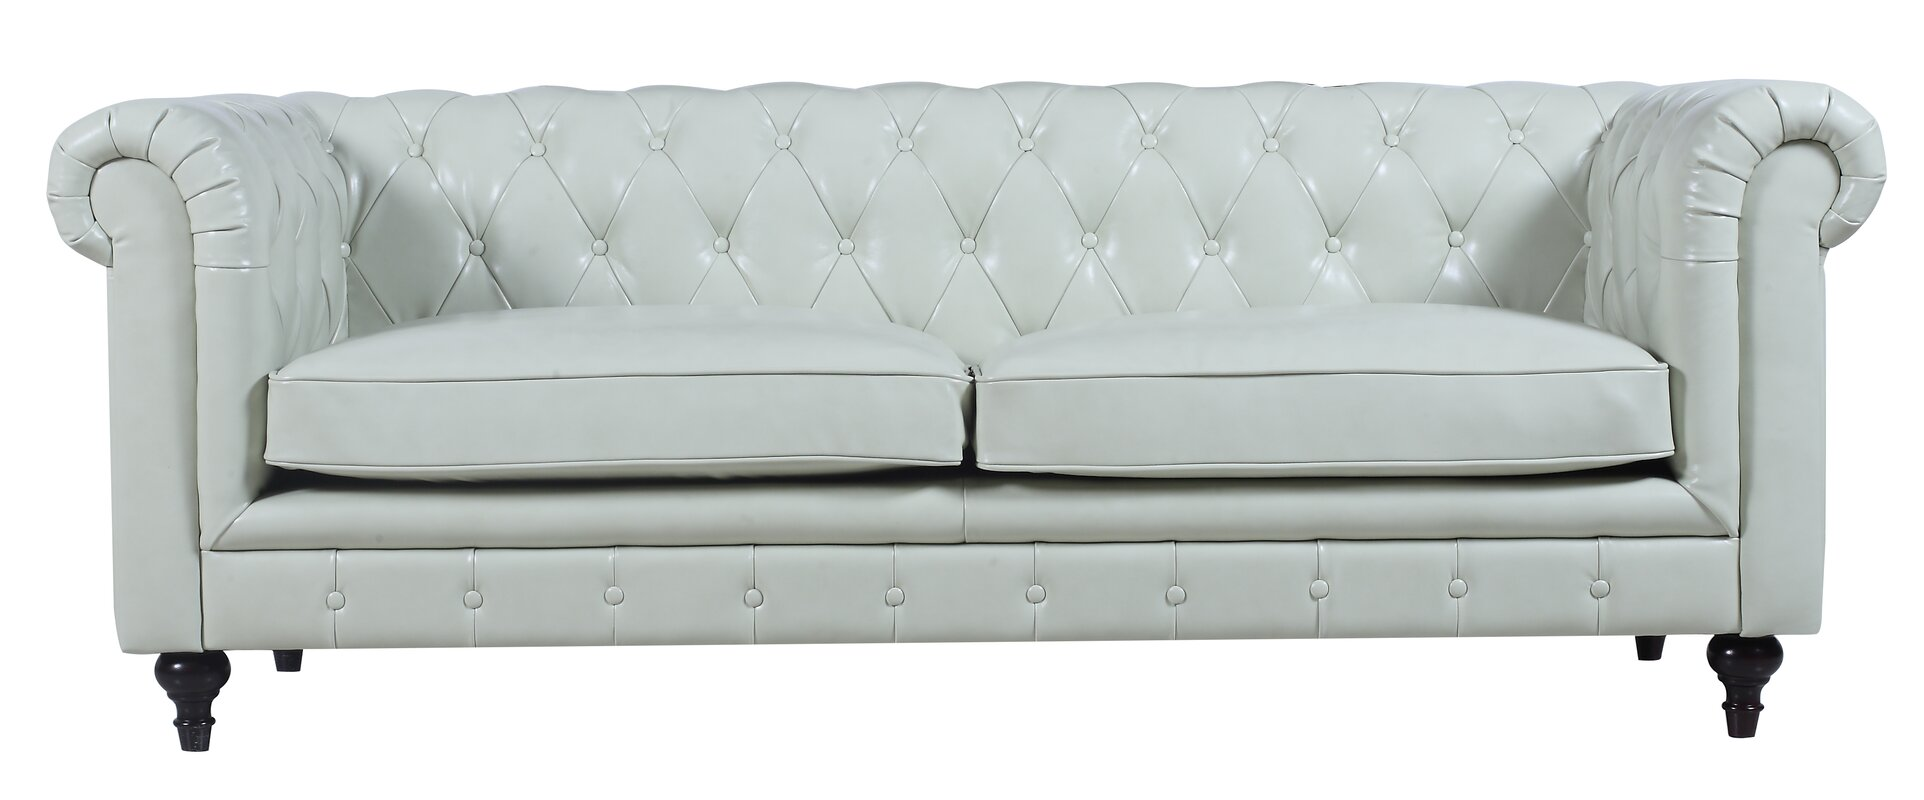 Madison Home USA Tufted Leather Chesterfield Sofa& Reviews Wayfair